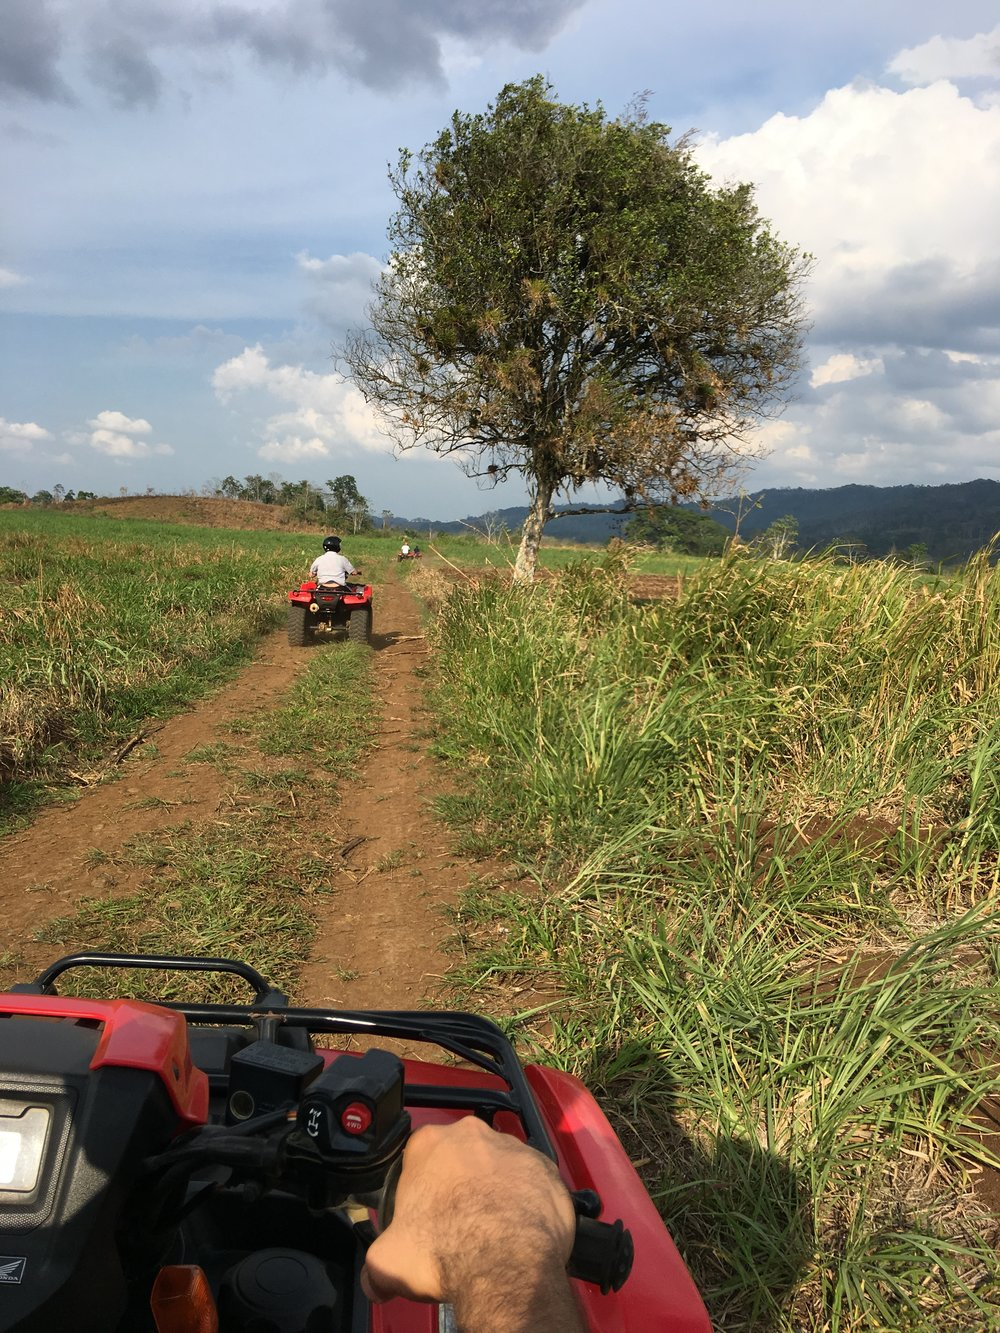 Driving on ATV's is extremely fun and a great way to explore farmlands in the real Costa Rica.